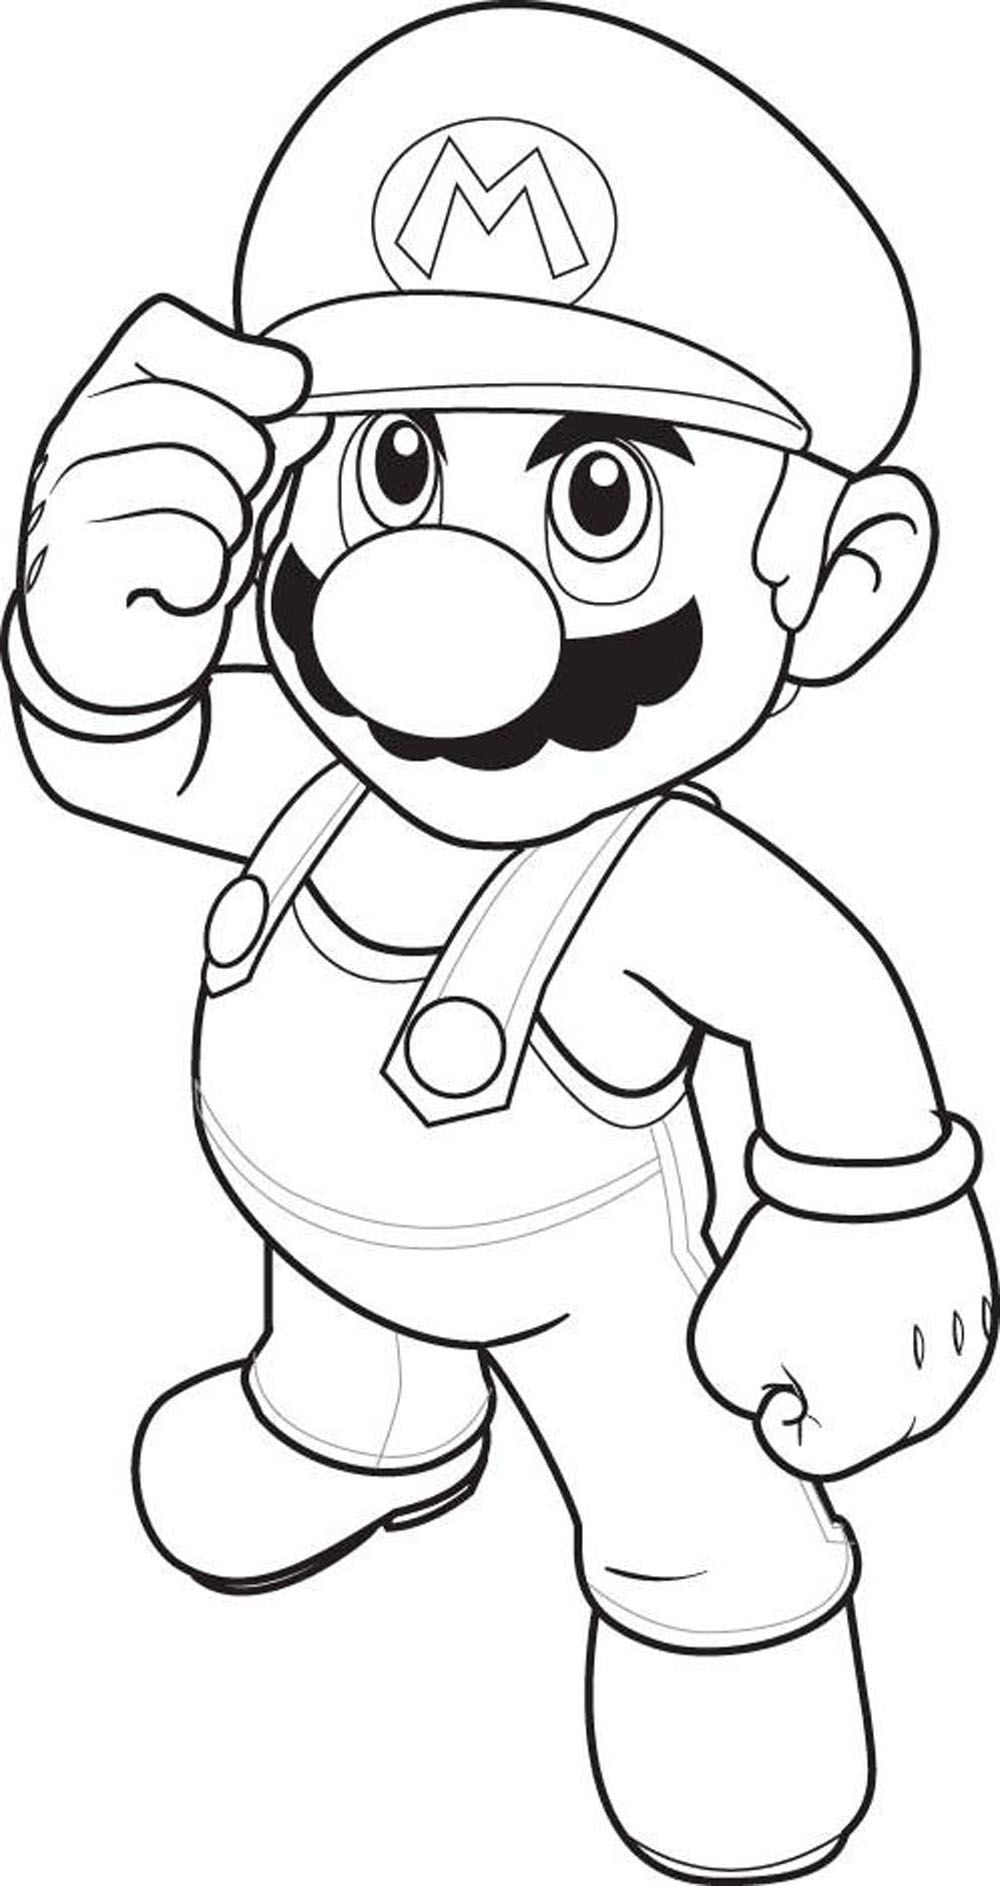 super mario coloring pages to print - Printable Kids Colouring Pages